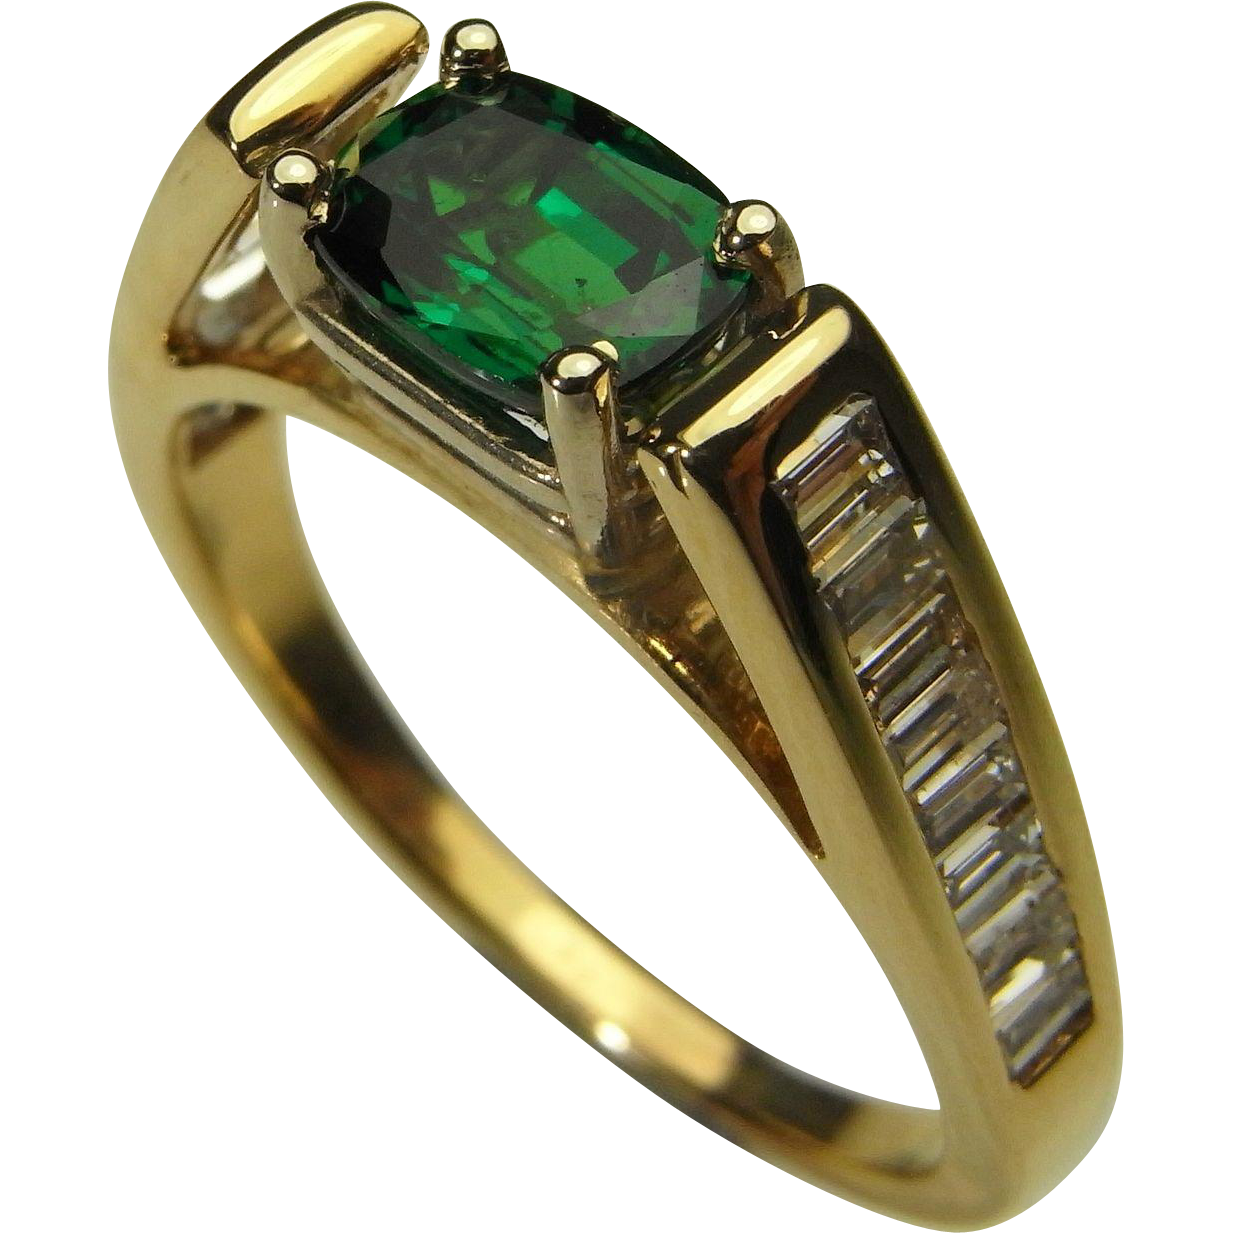 Gold Engagement Ring Wedding Color Dress Promise Anniversary Handmade Vintage Unique Pretty Dainty Solitaire Vivid Emerald Green